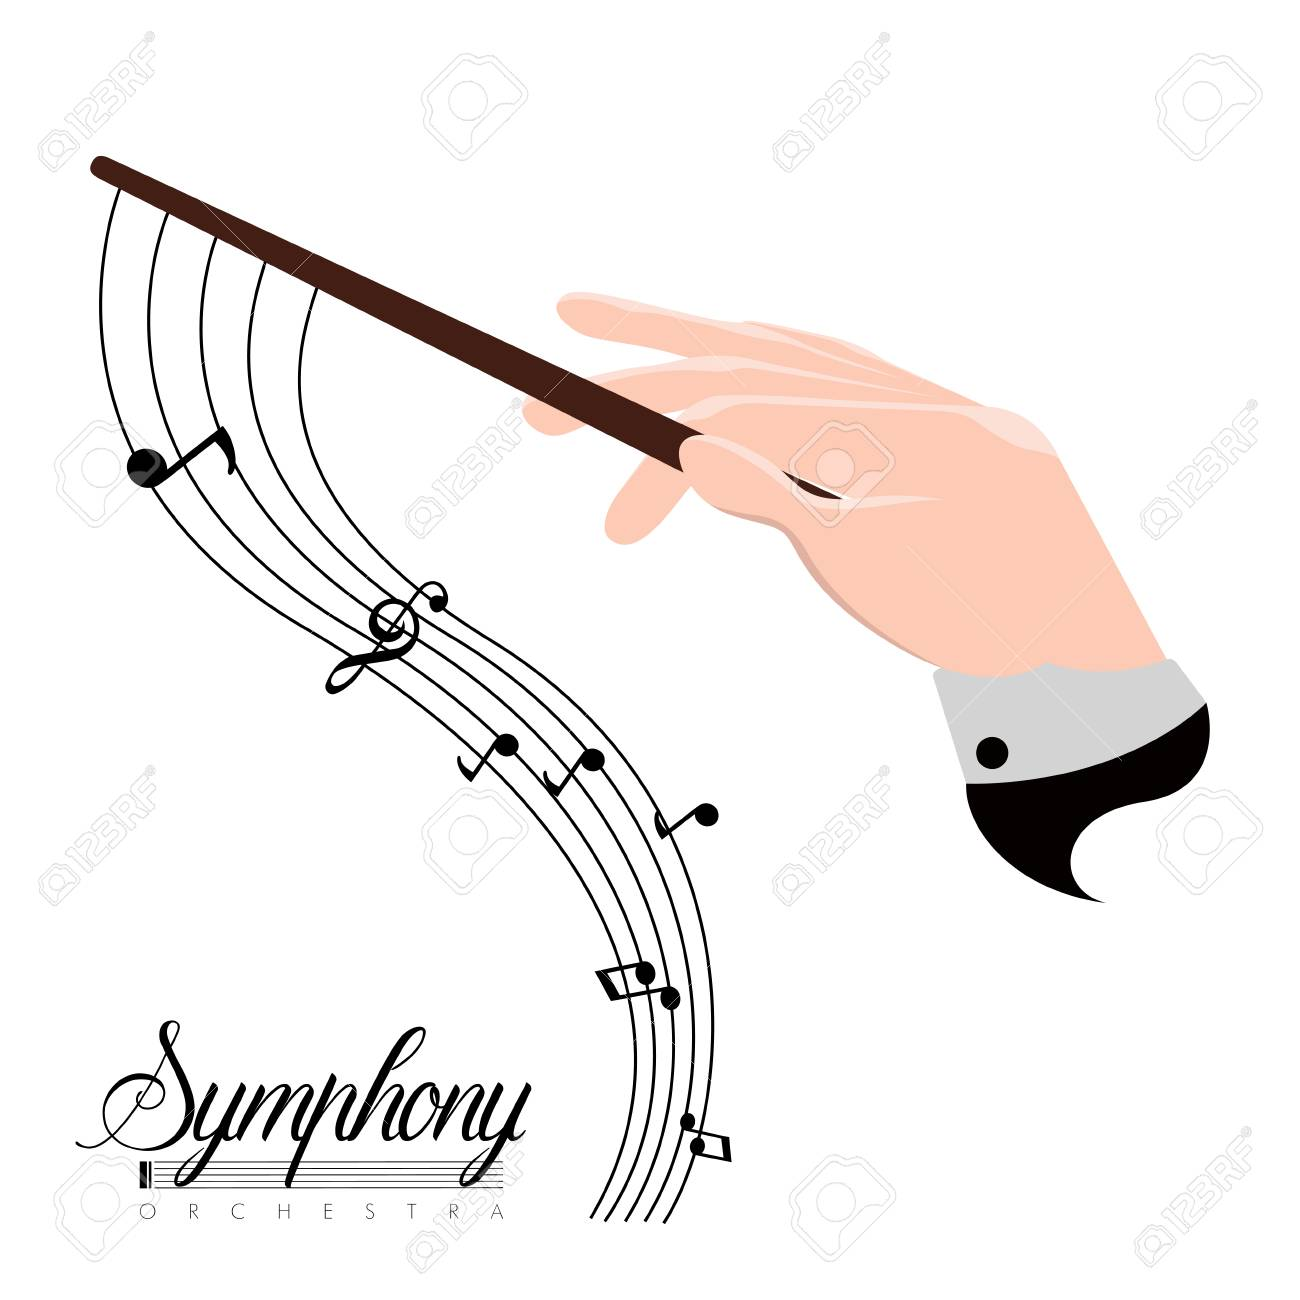 Orchestra director hand icon with musical notes. Vector illustration design - 106410932